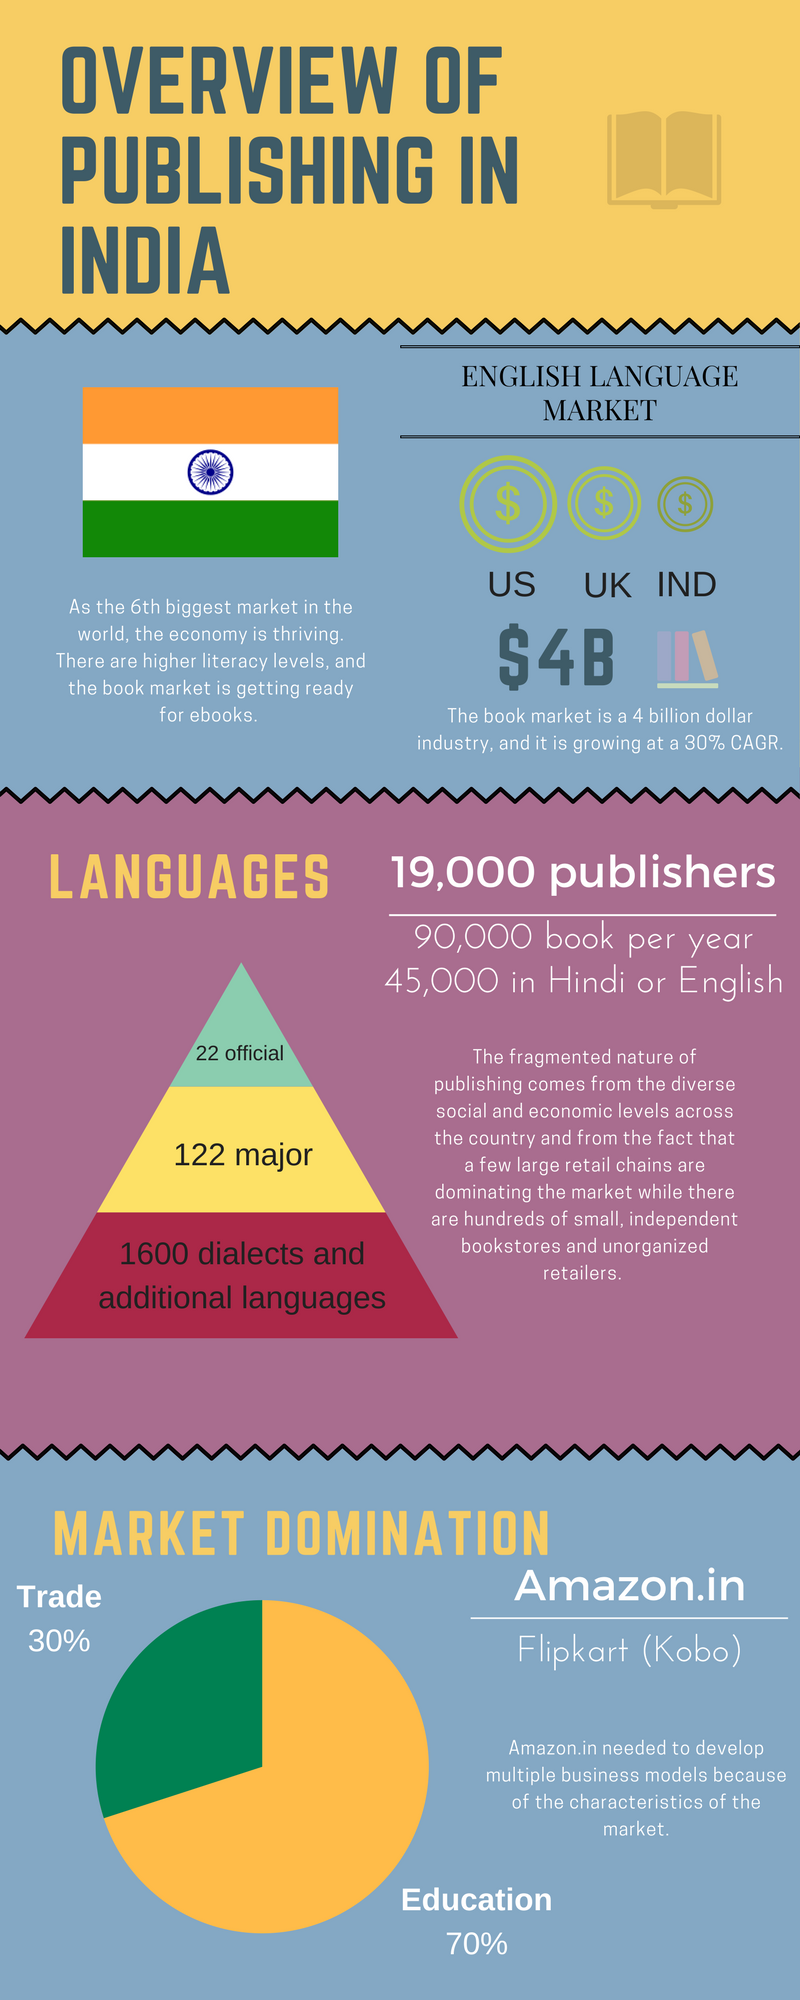 Overview of publishing in India